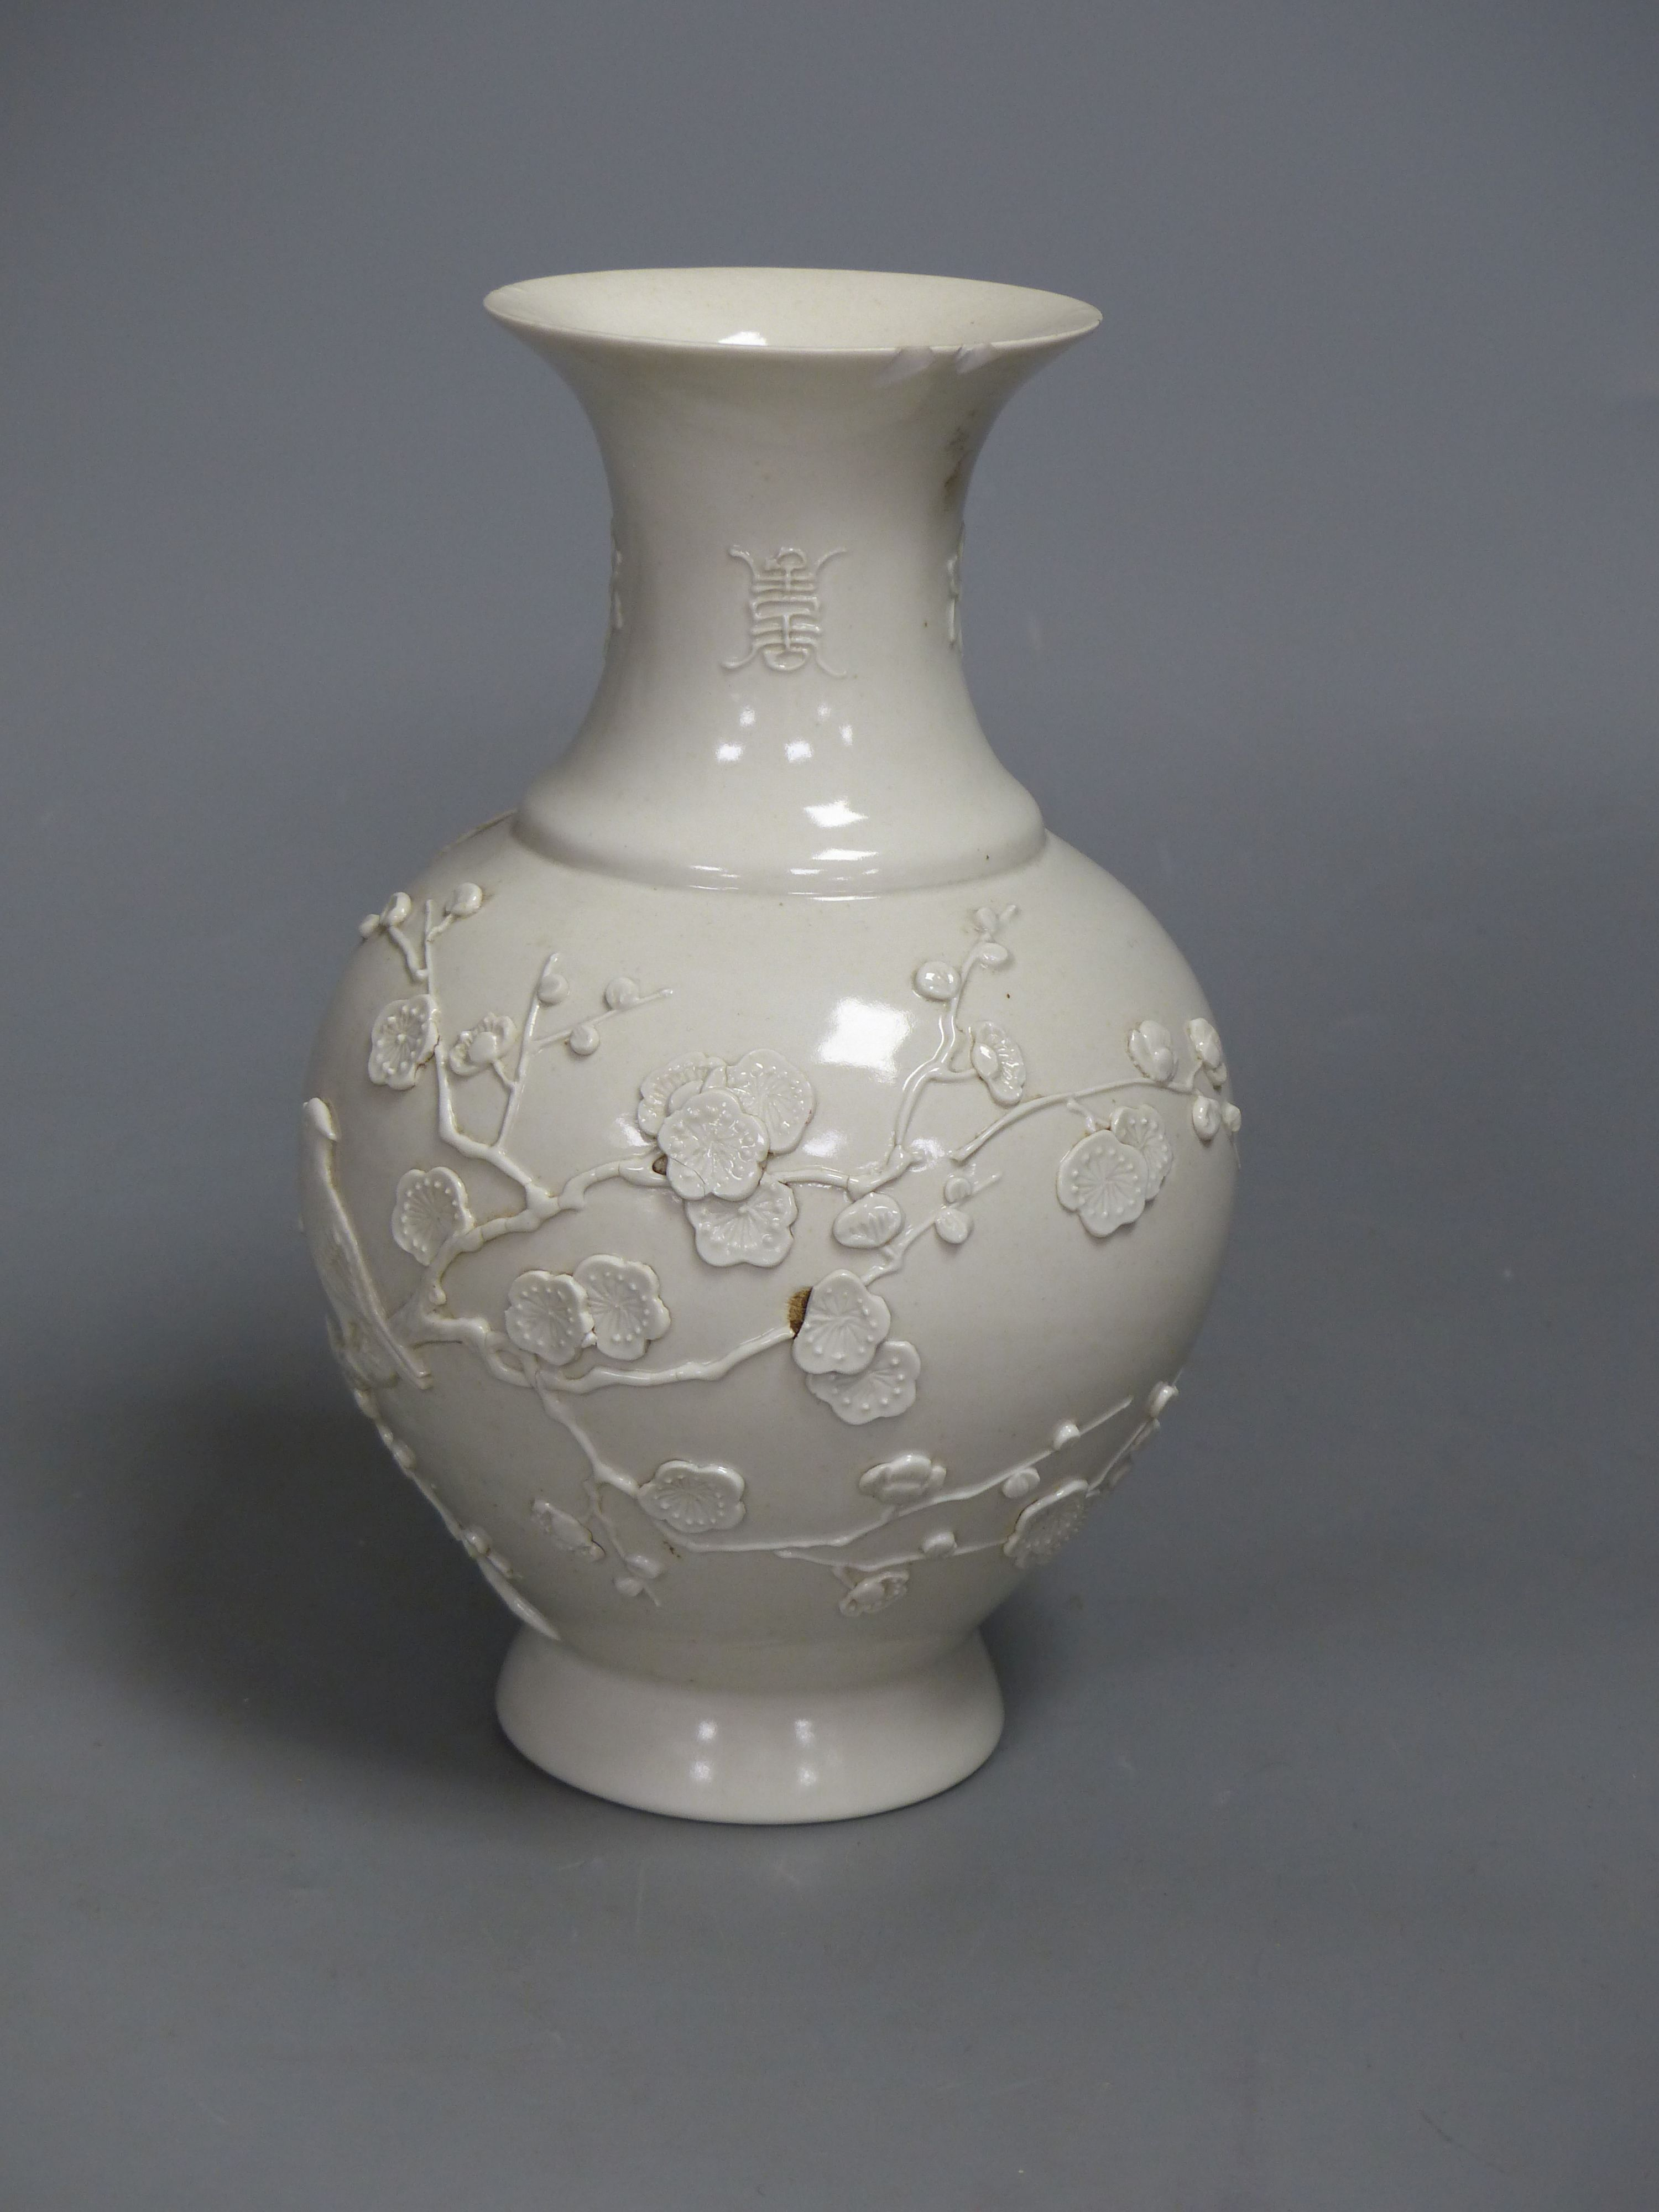 A Chinese white glazed vase Wang Bingrong seal mark, height 18.5cm - Image 2 of 4